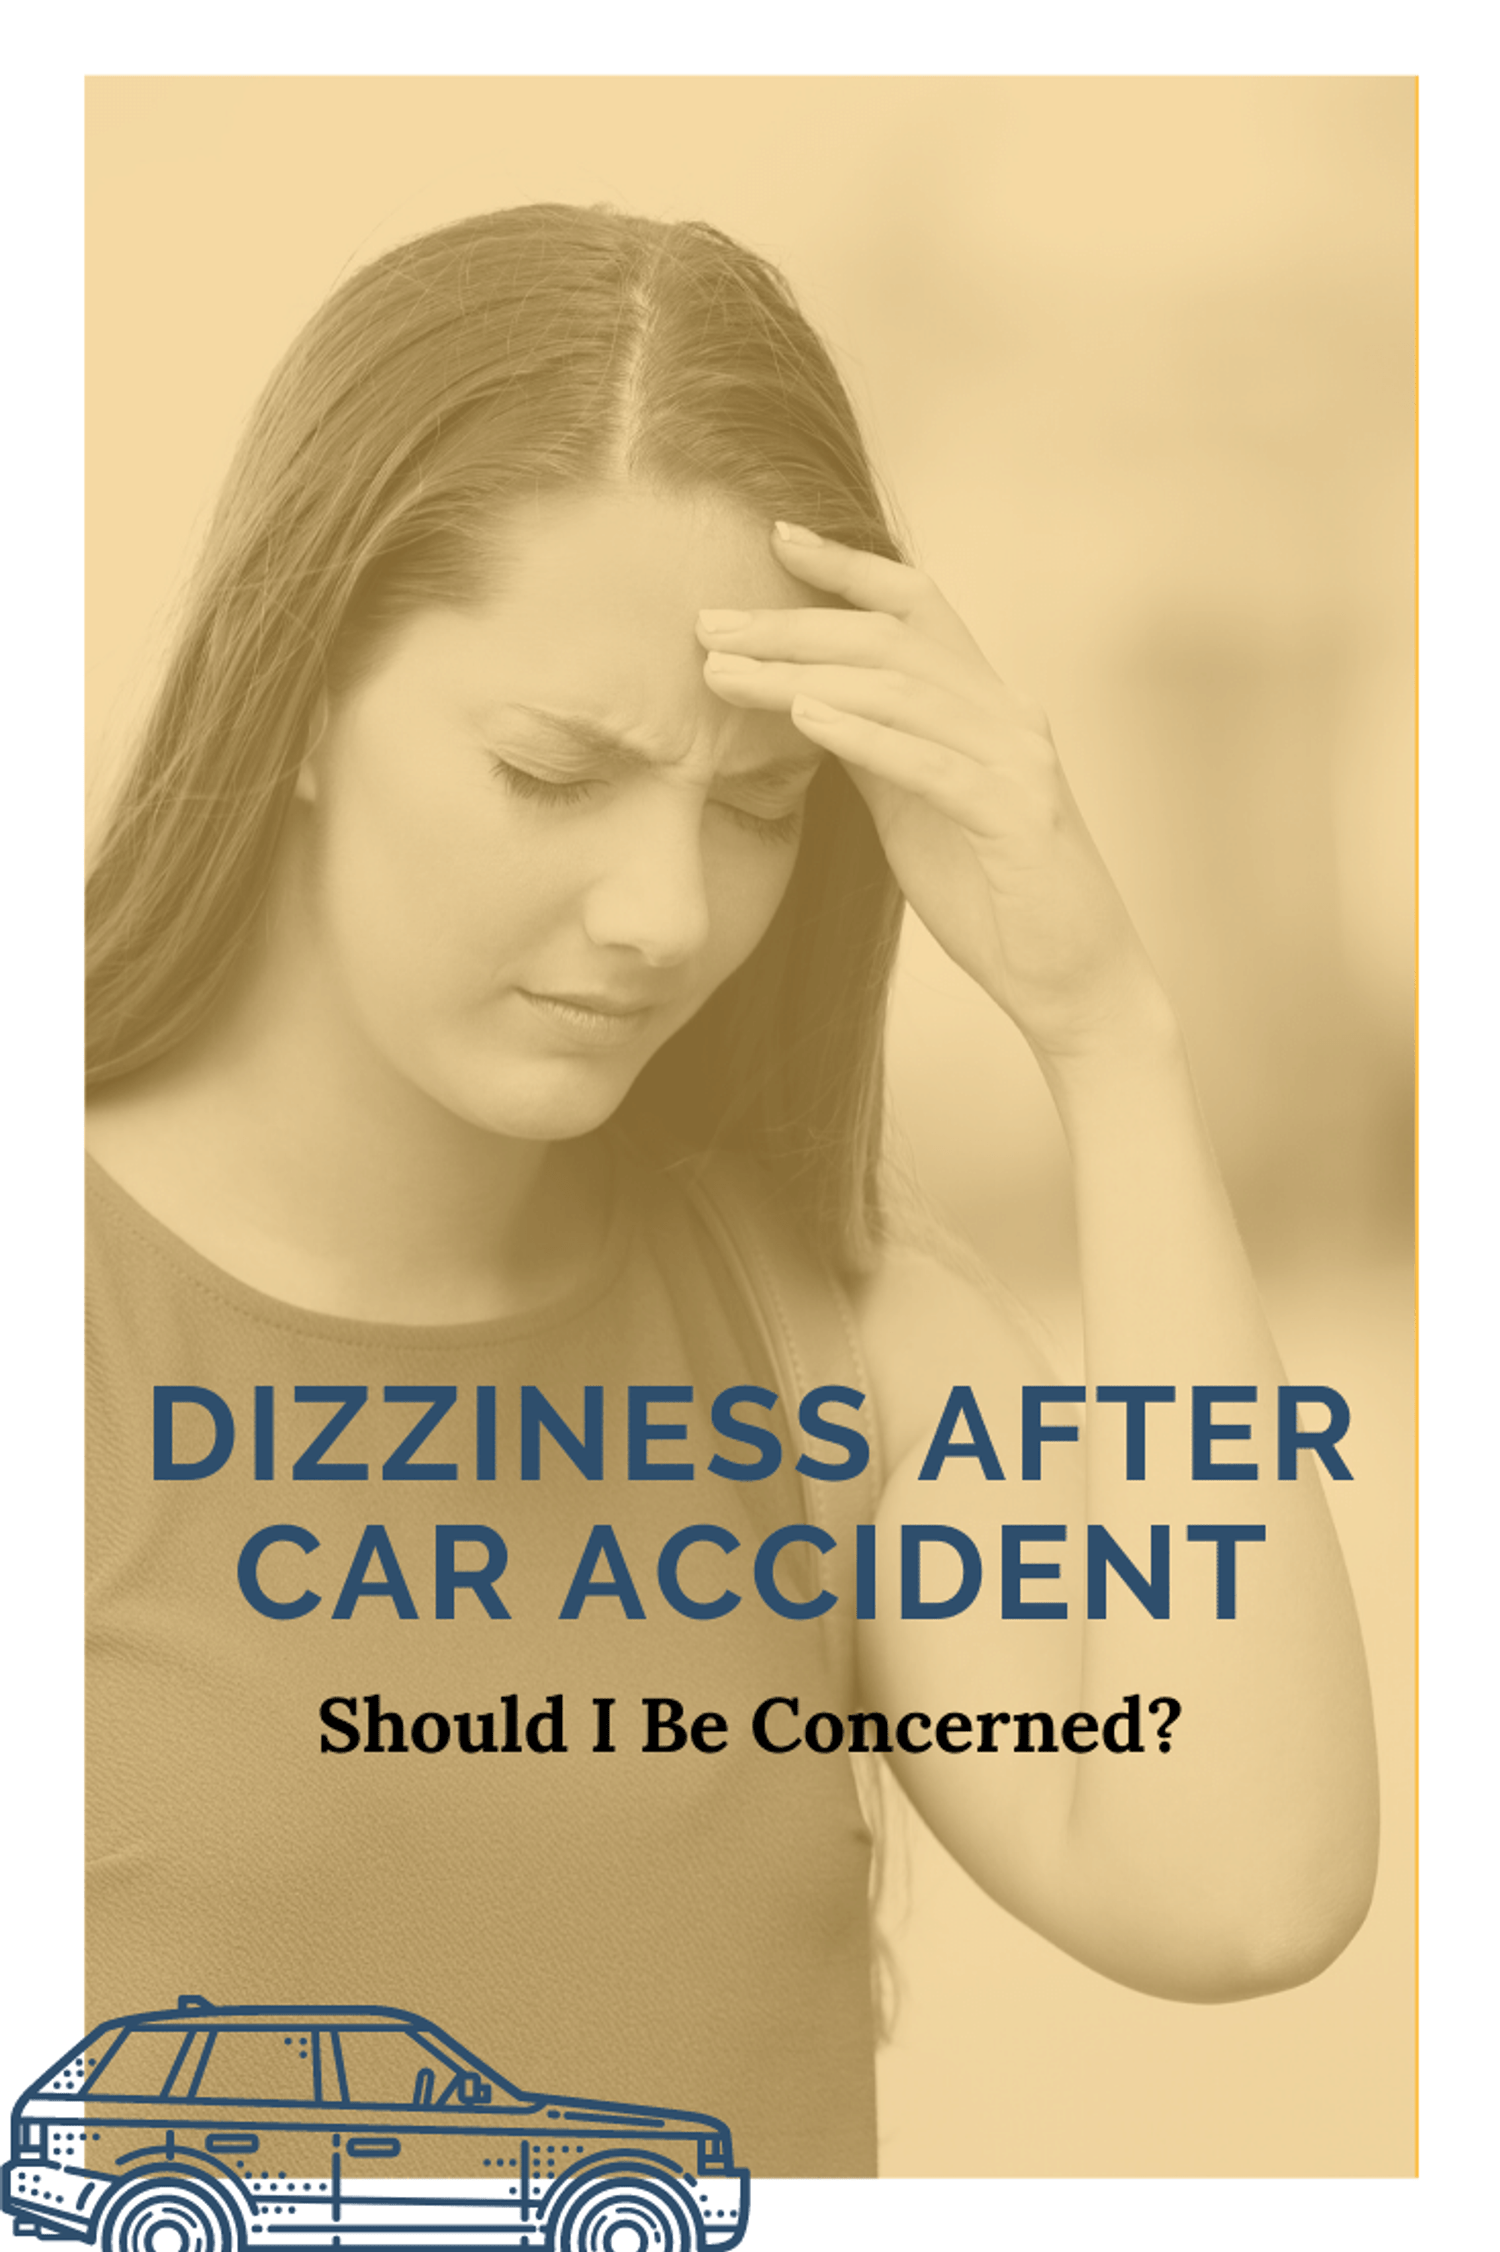 Dizziness After Car Accident: Should I Be Concerned?